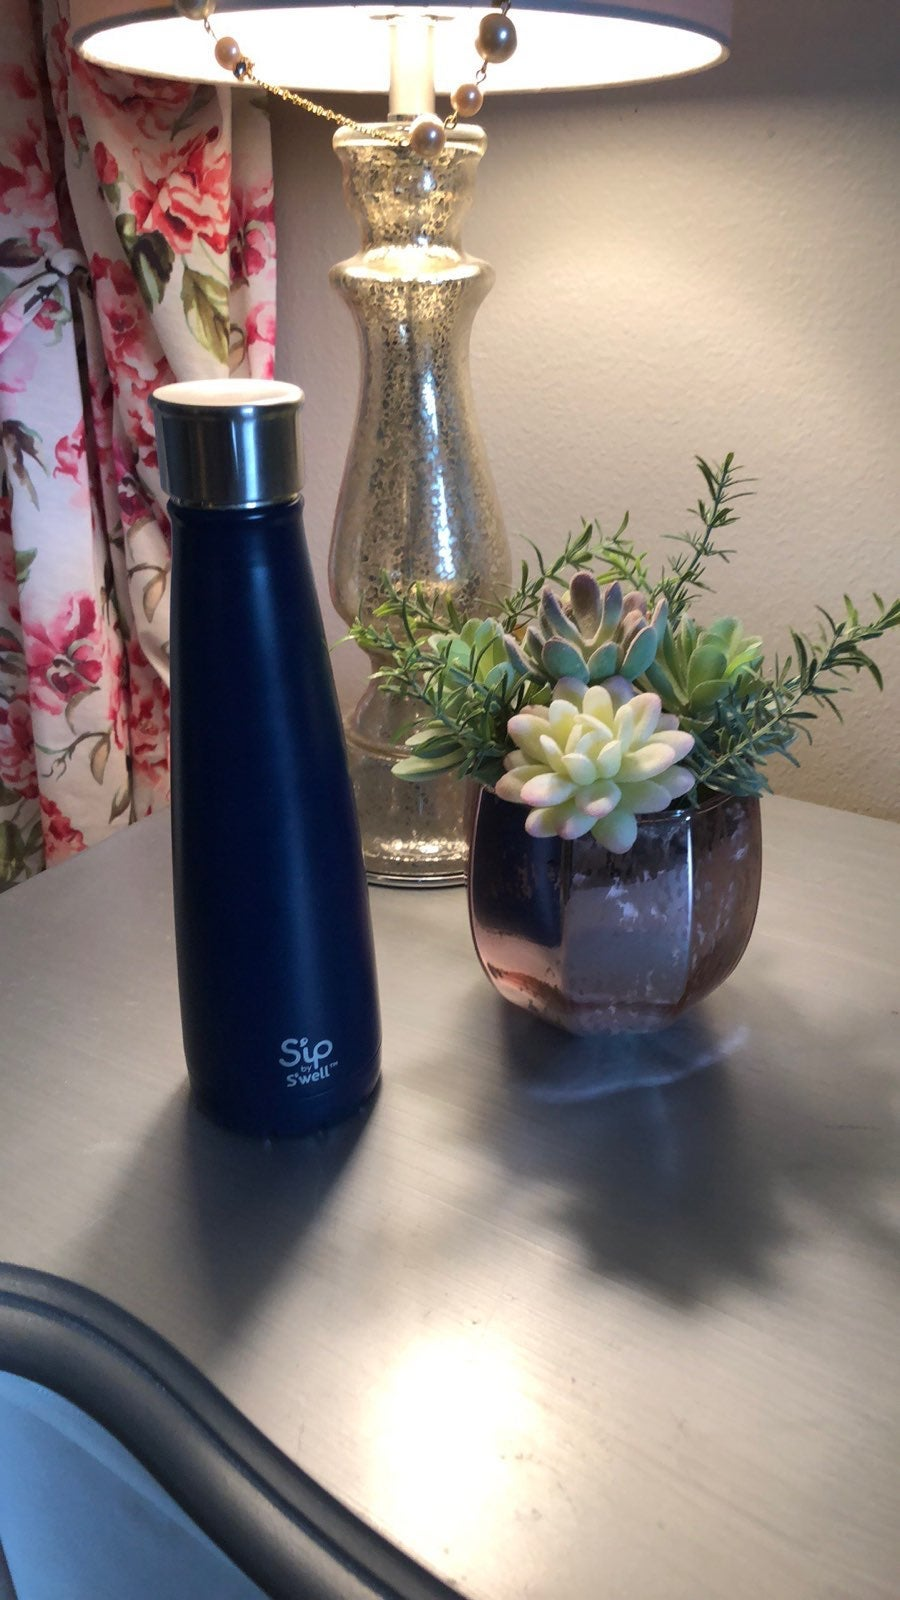 Navy Sip By Swell Bottle